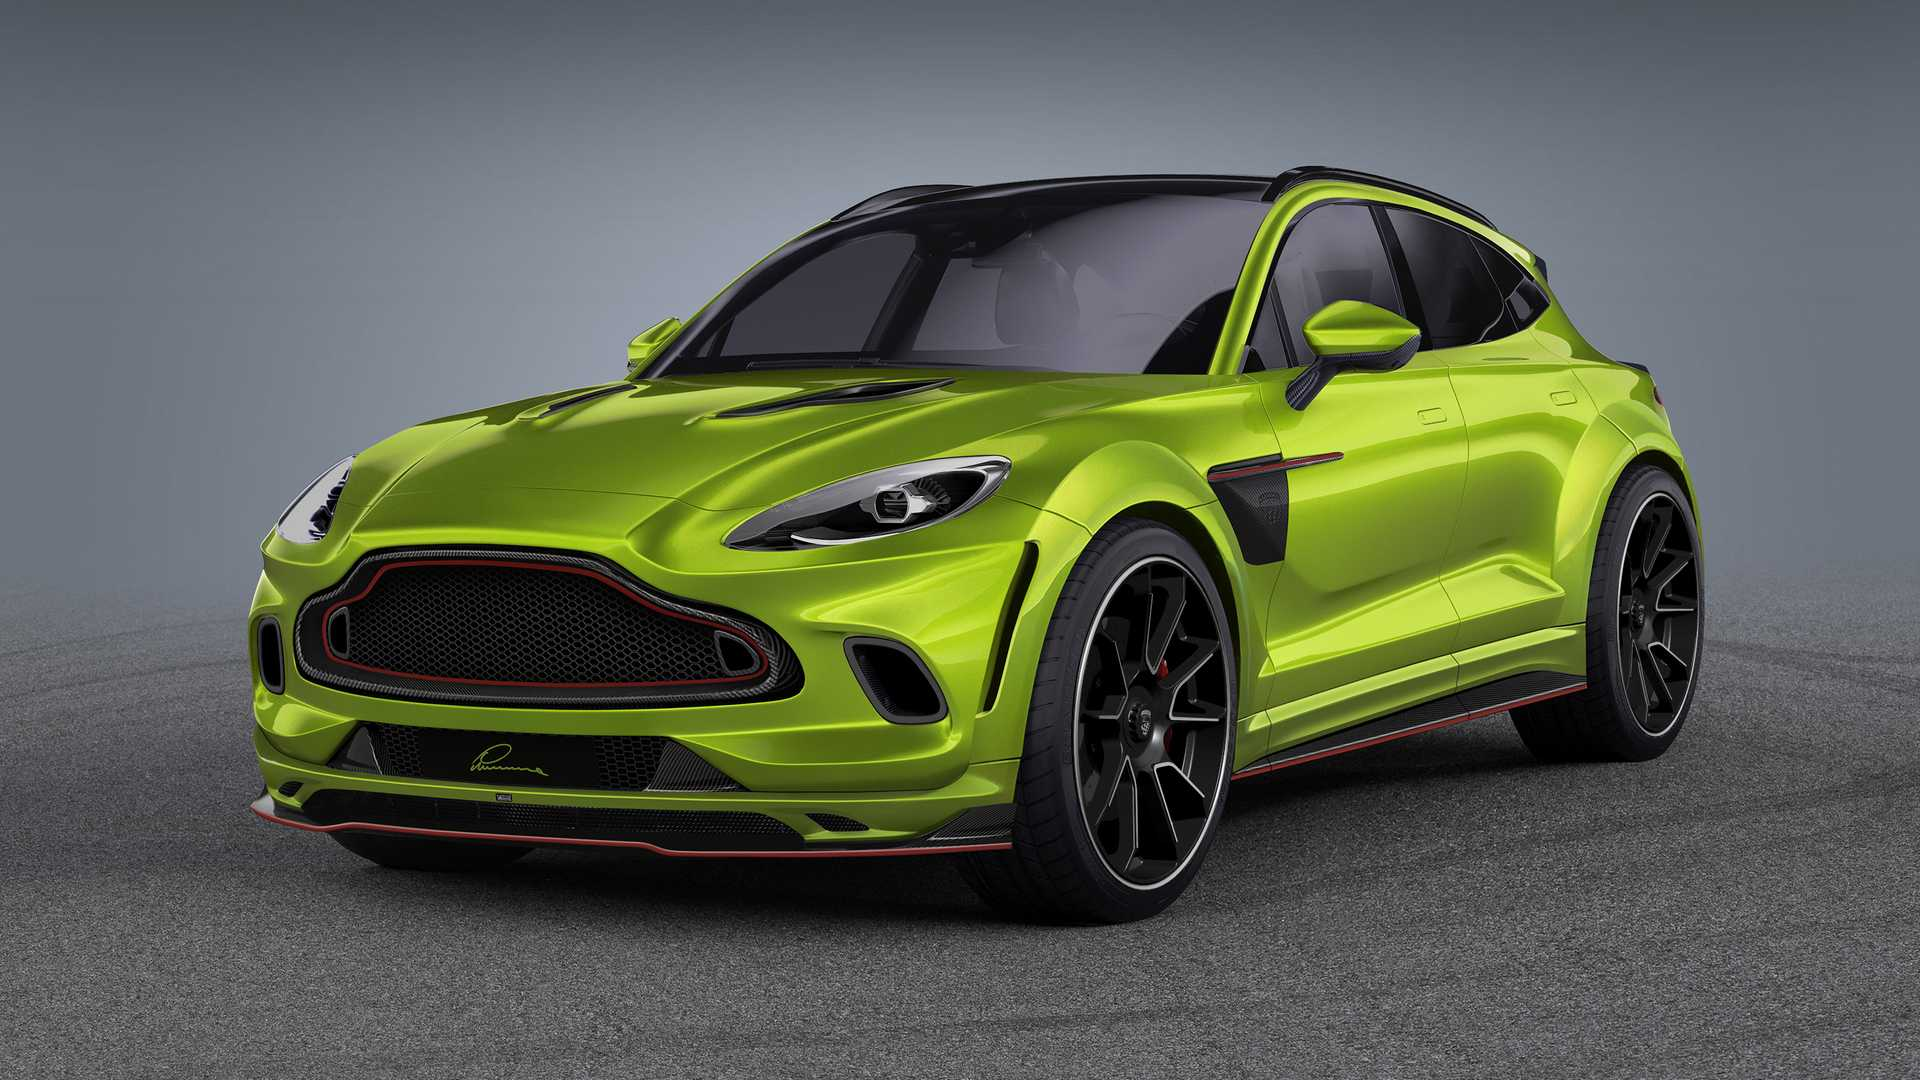 aston-martin-dbx-by-lumma-design